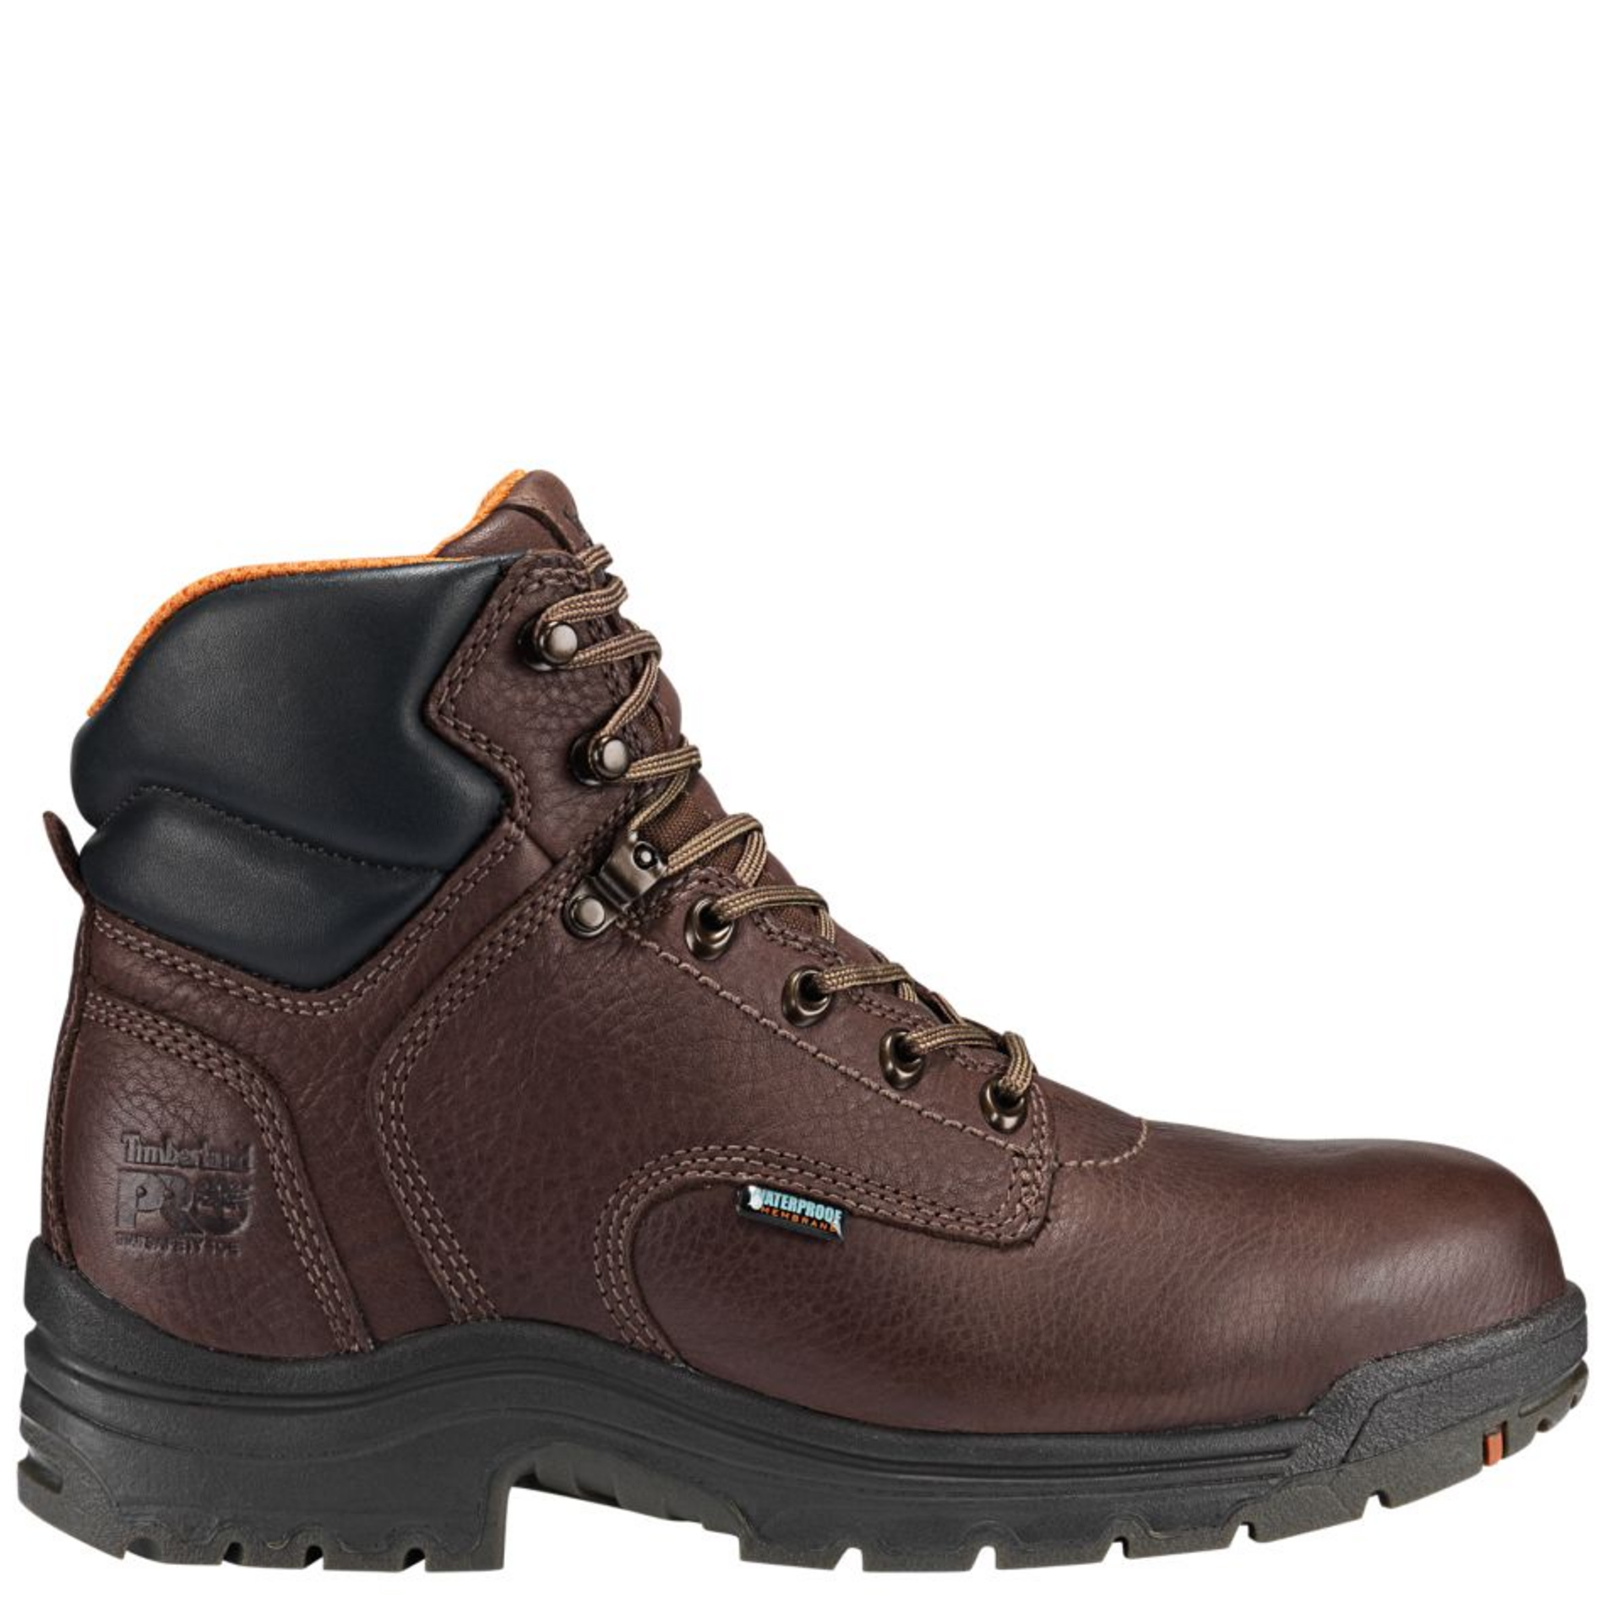 Keen Boots Leather